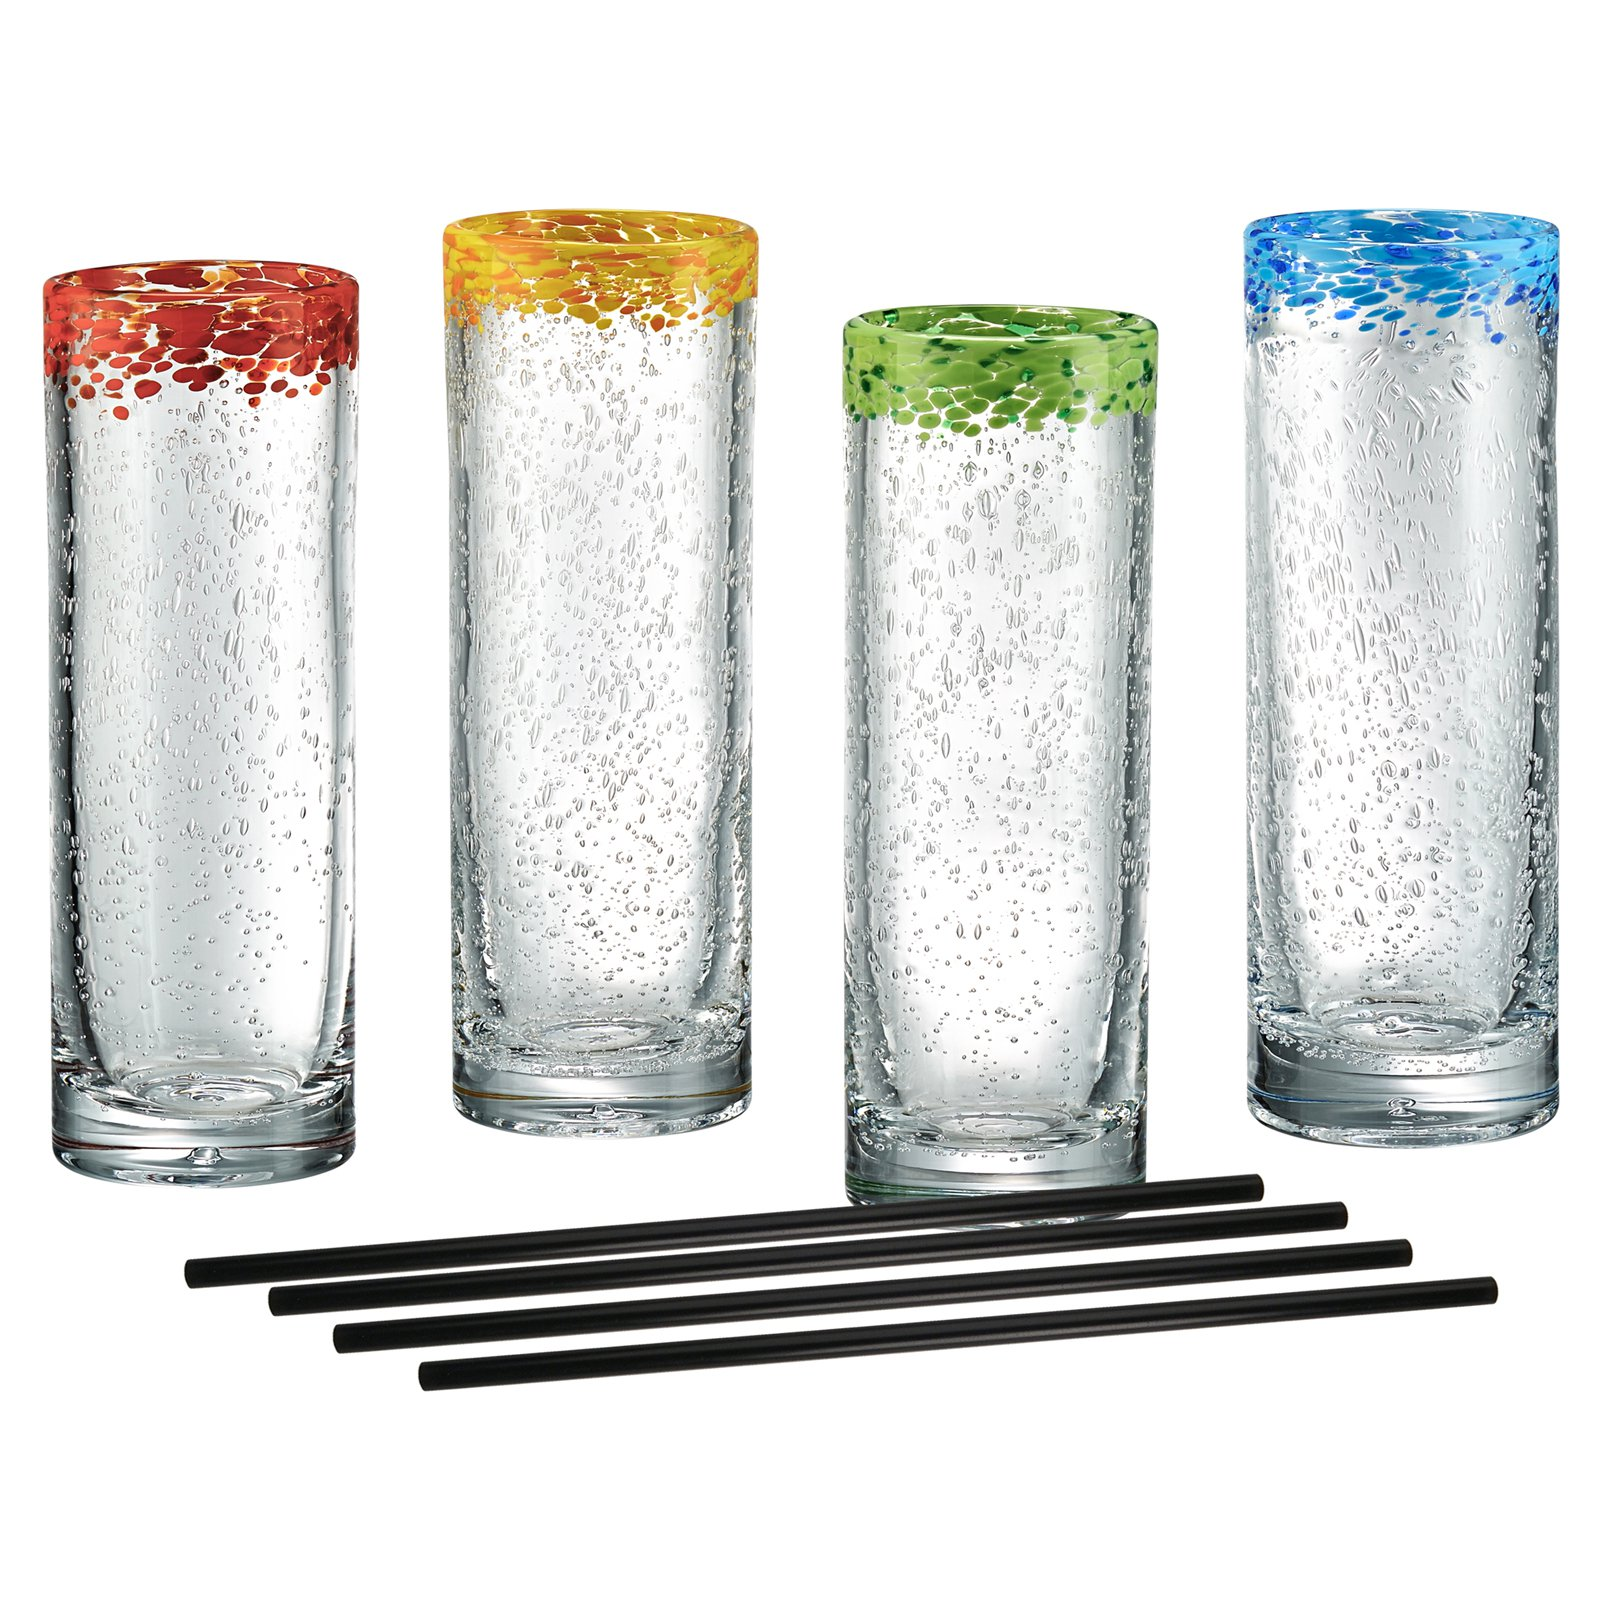 Artland Mingle Coolers with Reusable Straws - Set of 4